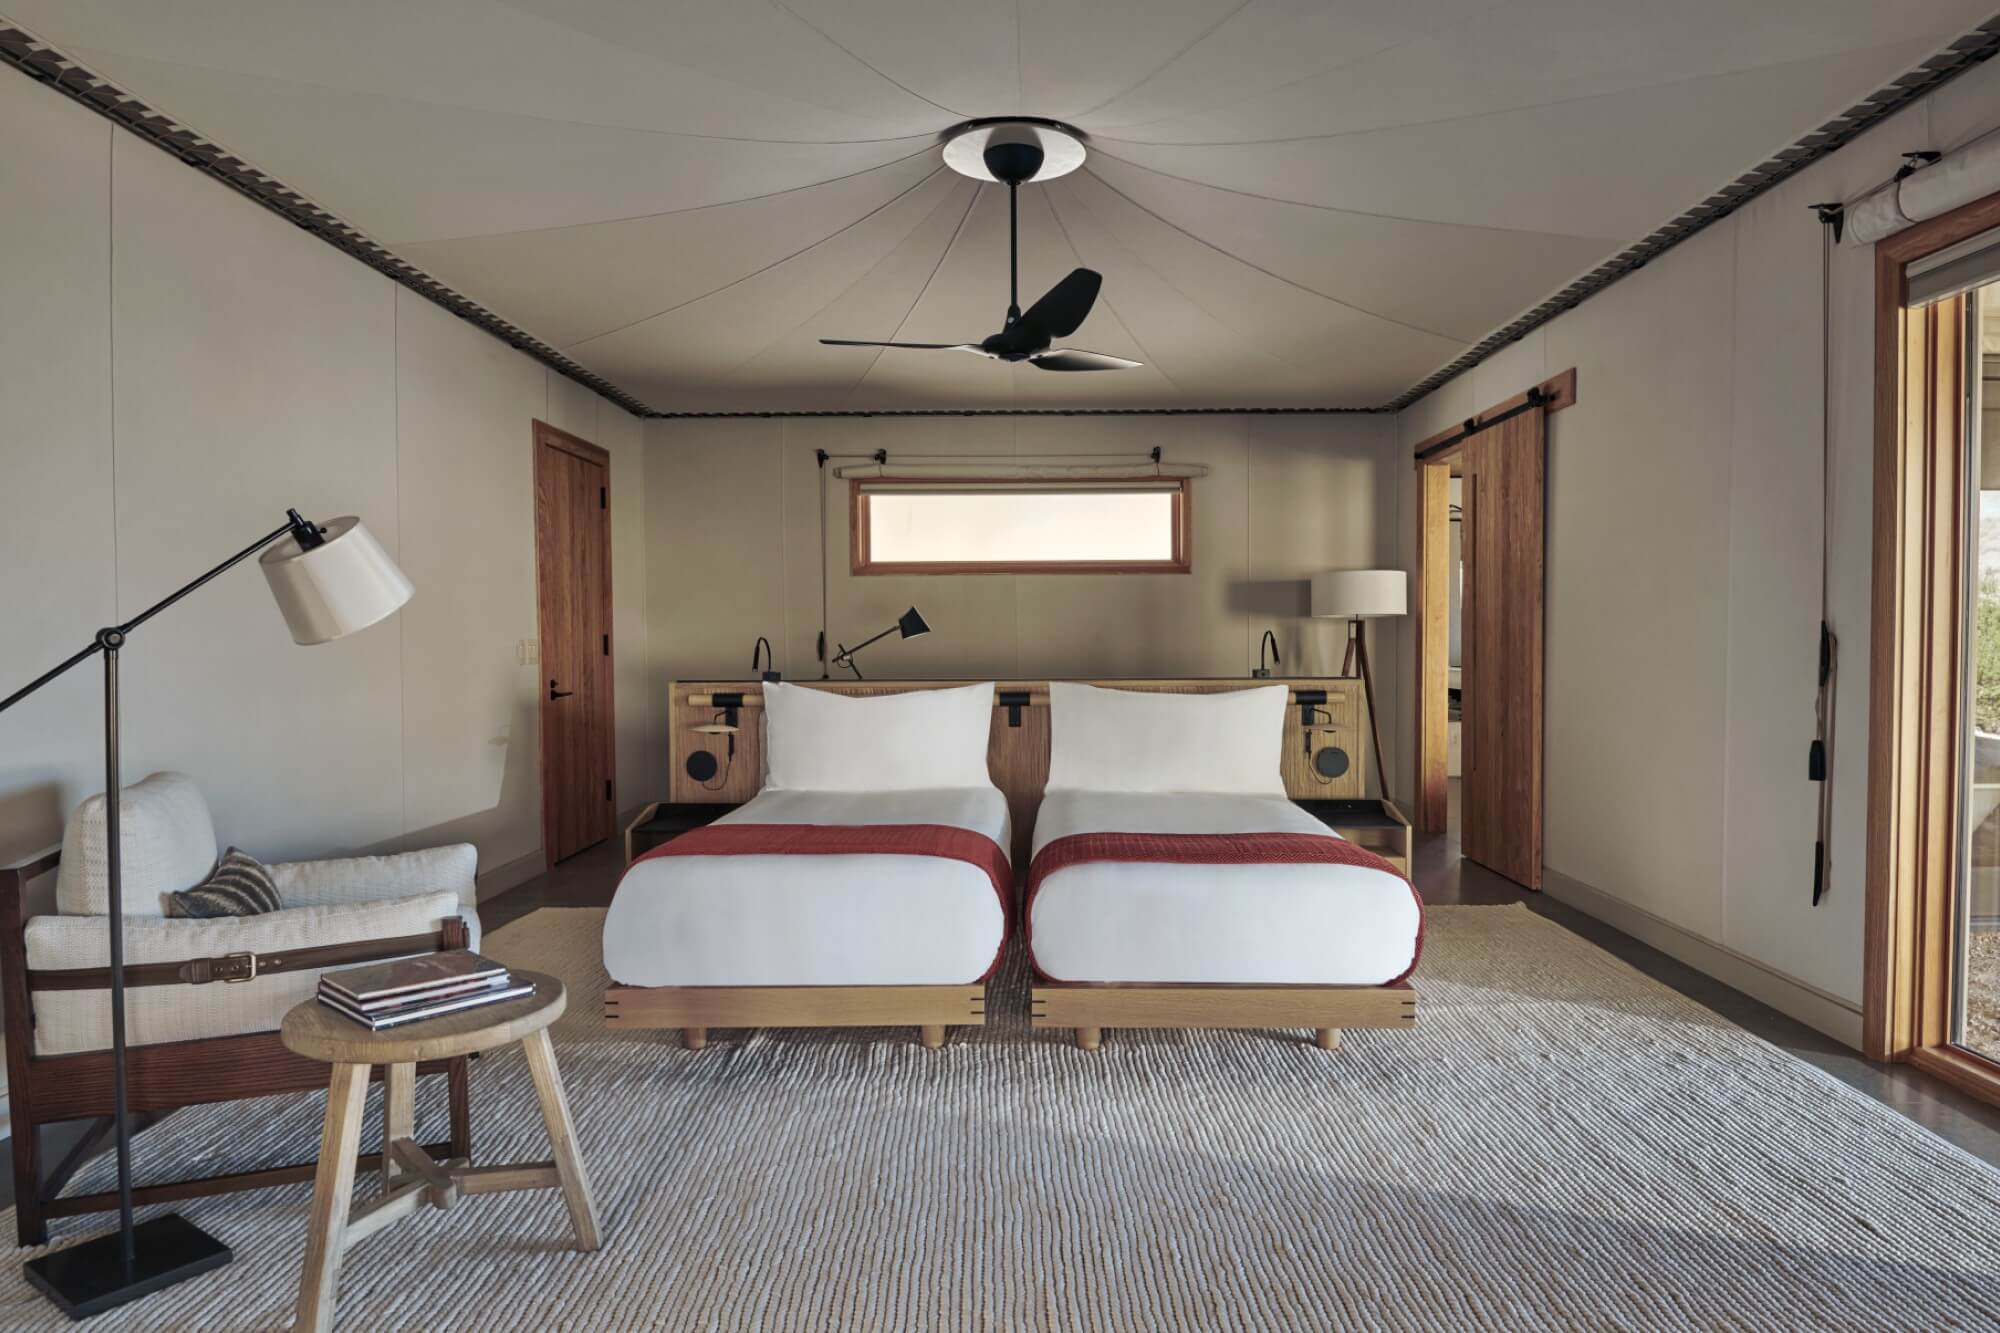 アマンギリ Amangiri, USA - Camp Sarika Tent 10 Twin Bedroom